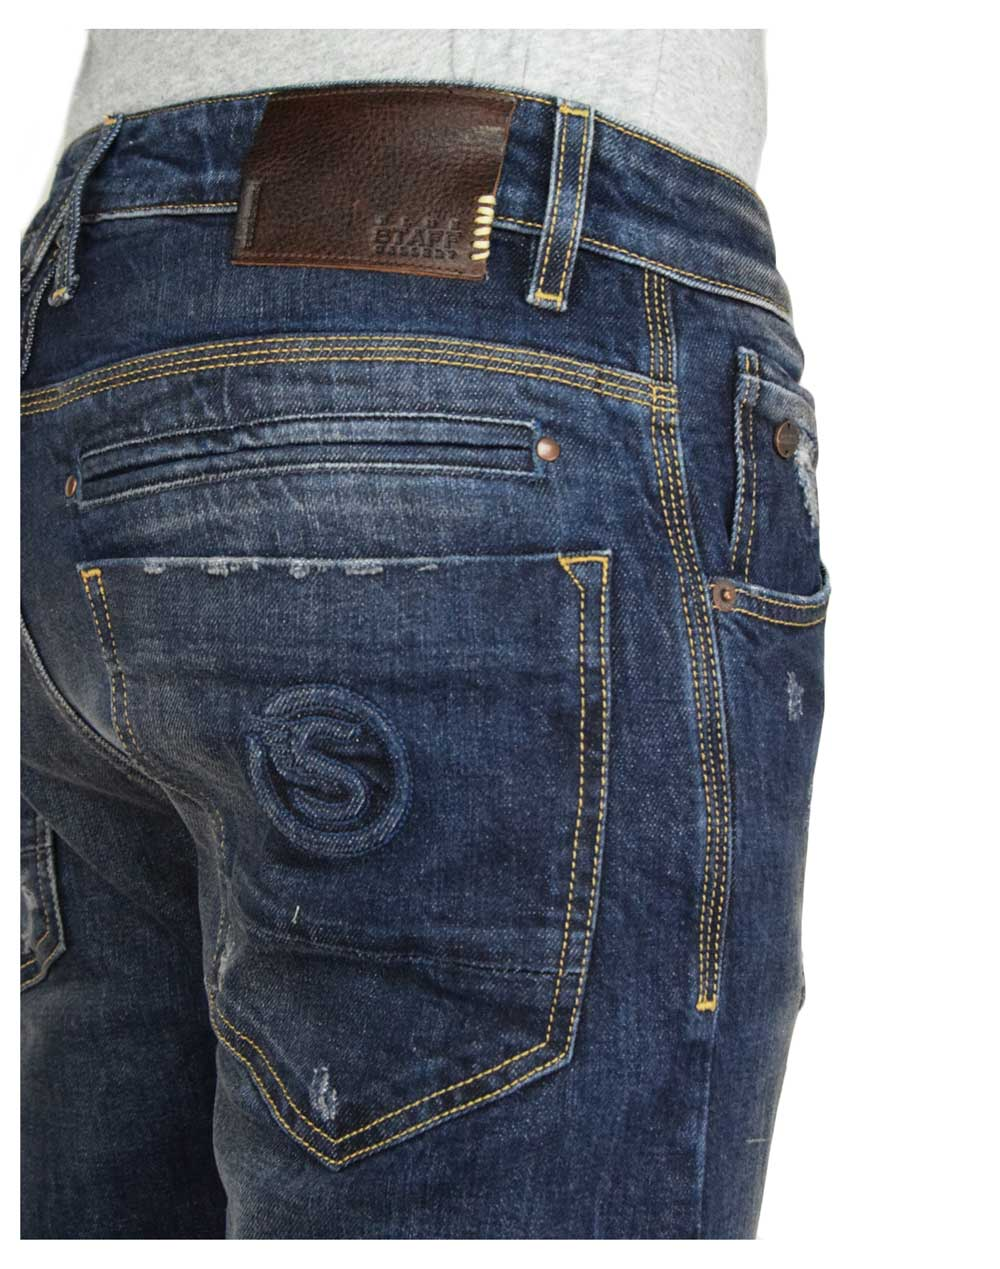 Staff Recoil Regular Fit (5-827.765.S1.044) Blue Denim Bleach